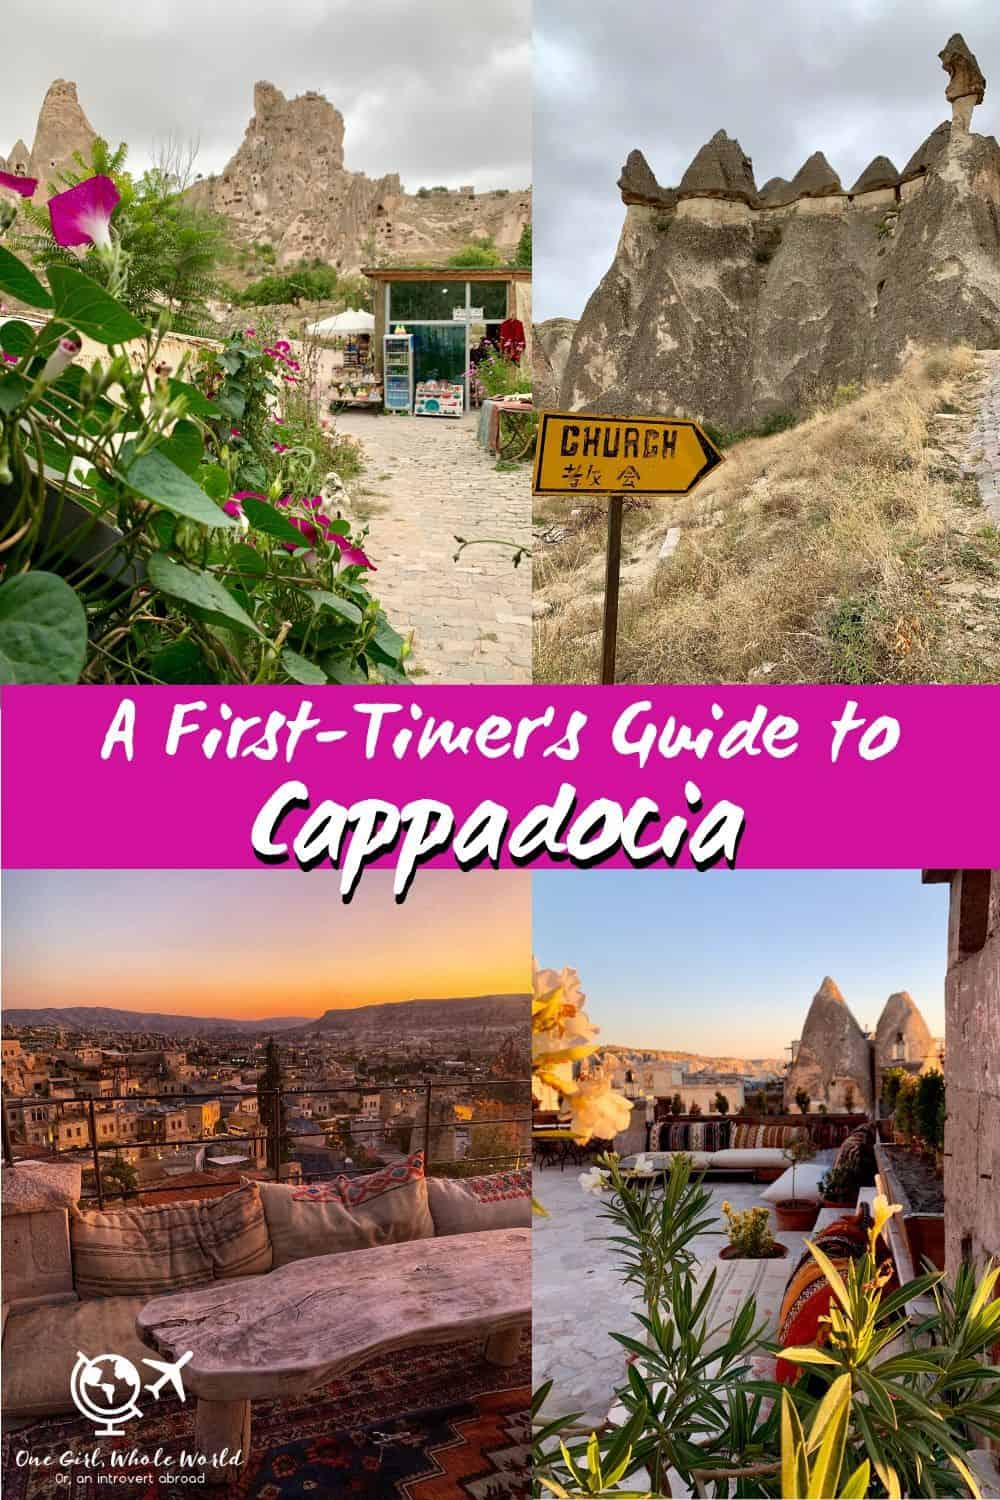 Cappadocia, Turkey: A First-Timer's Guide | Visiting the area of Cappadocia was a major bucket list trip, and it didn't disappoint! I've put together a detailed guide on how to get there, what to see, how to get around, where to stay, and more! Visiting Goreme, Uchisar, Pasabag Valley, Zelve, and more, all the fairy chimneys, gorgeous sunrises, and history you can take! What to do in Cappadocia, trip planning tips. #cappadocia #turkey #bucketlist #solotravel